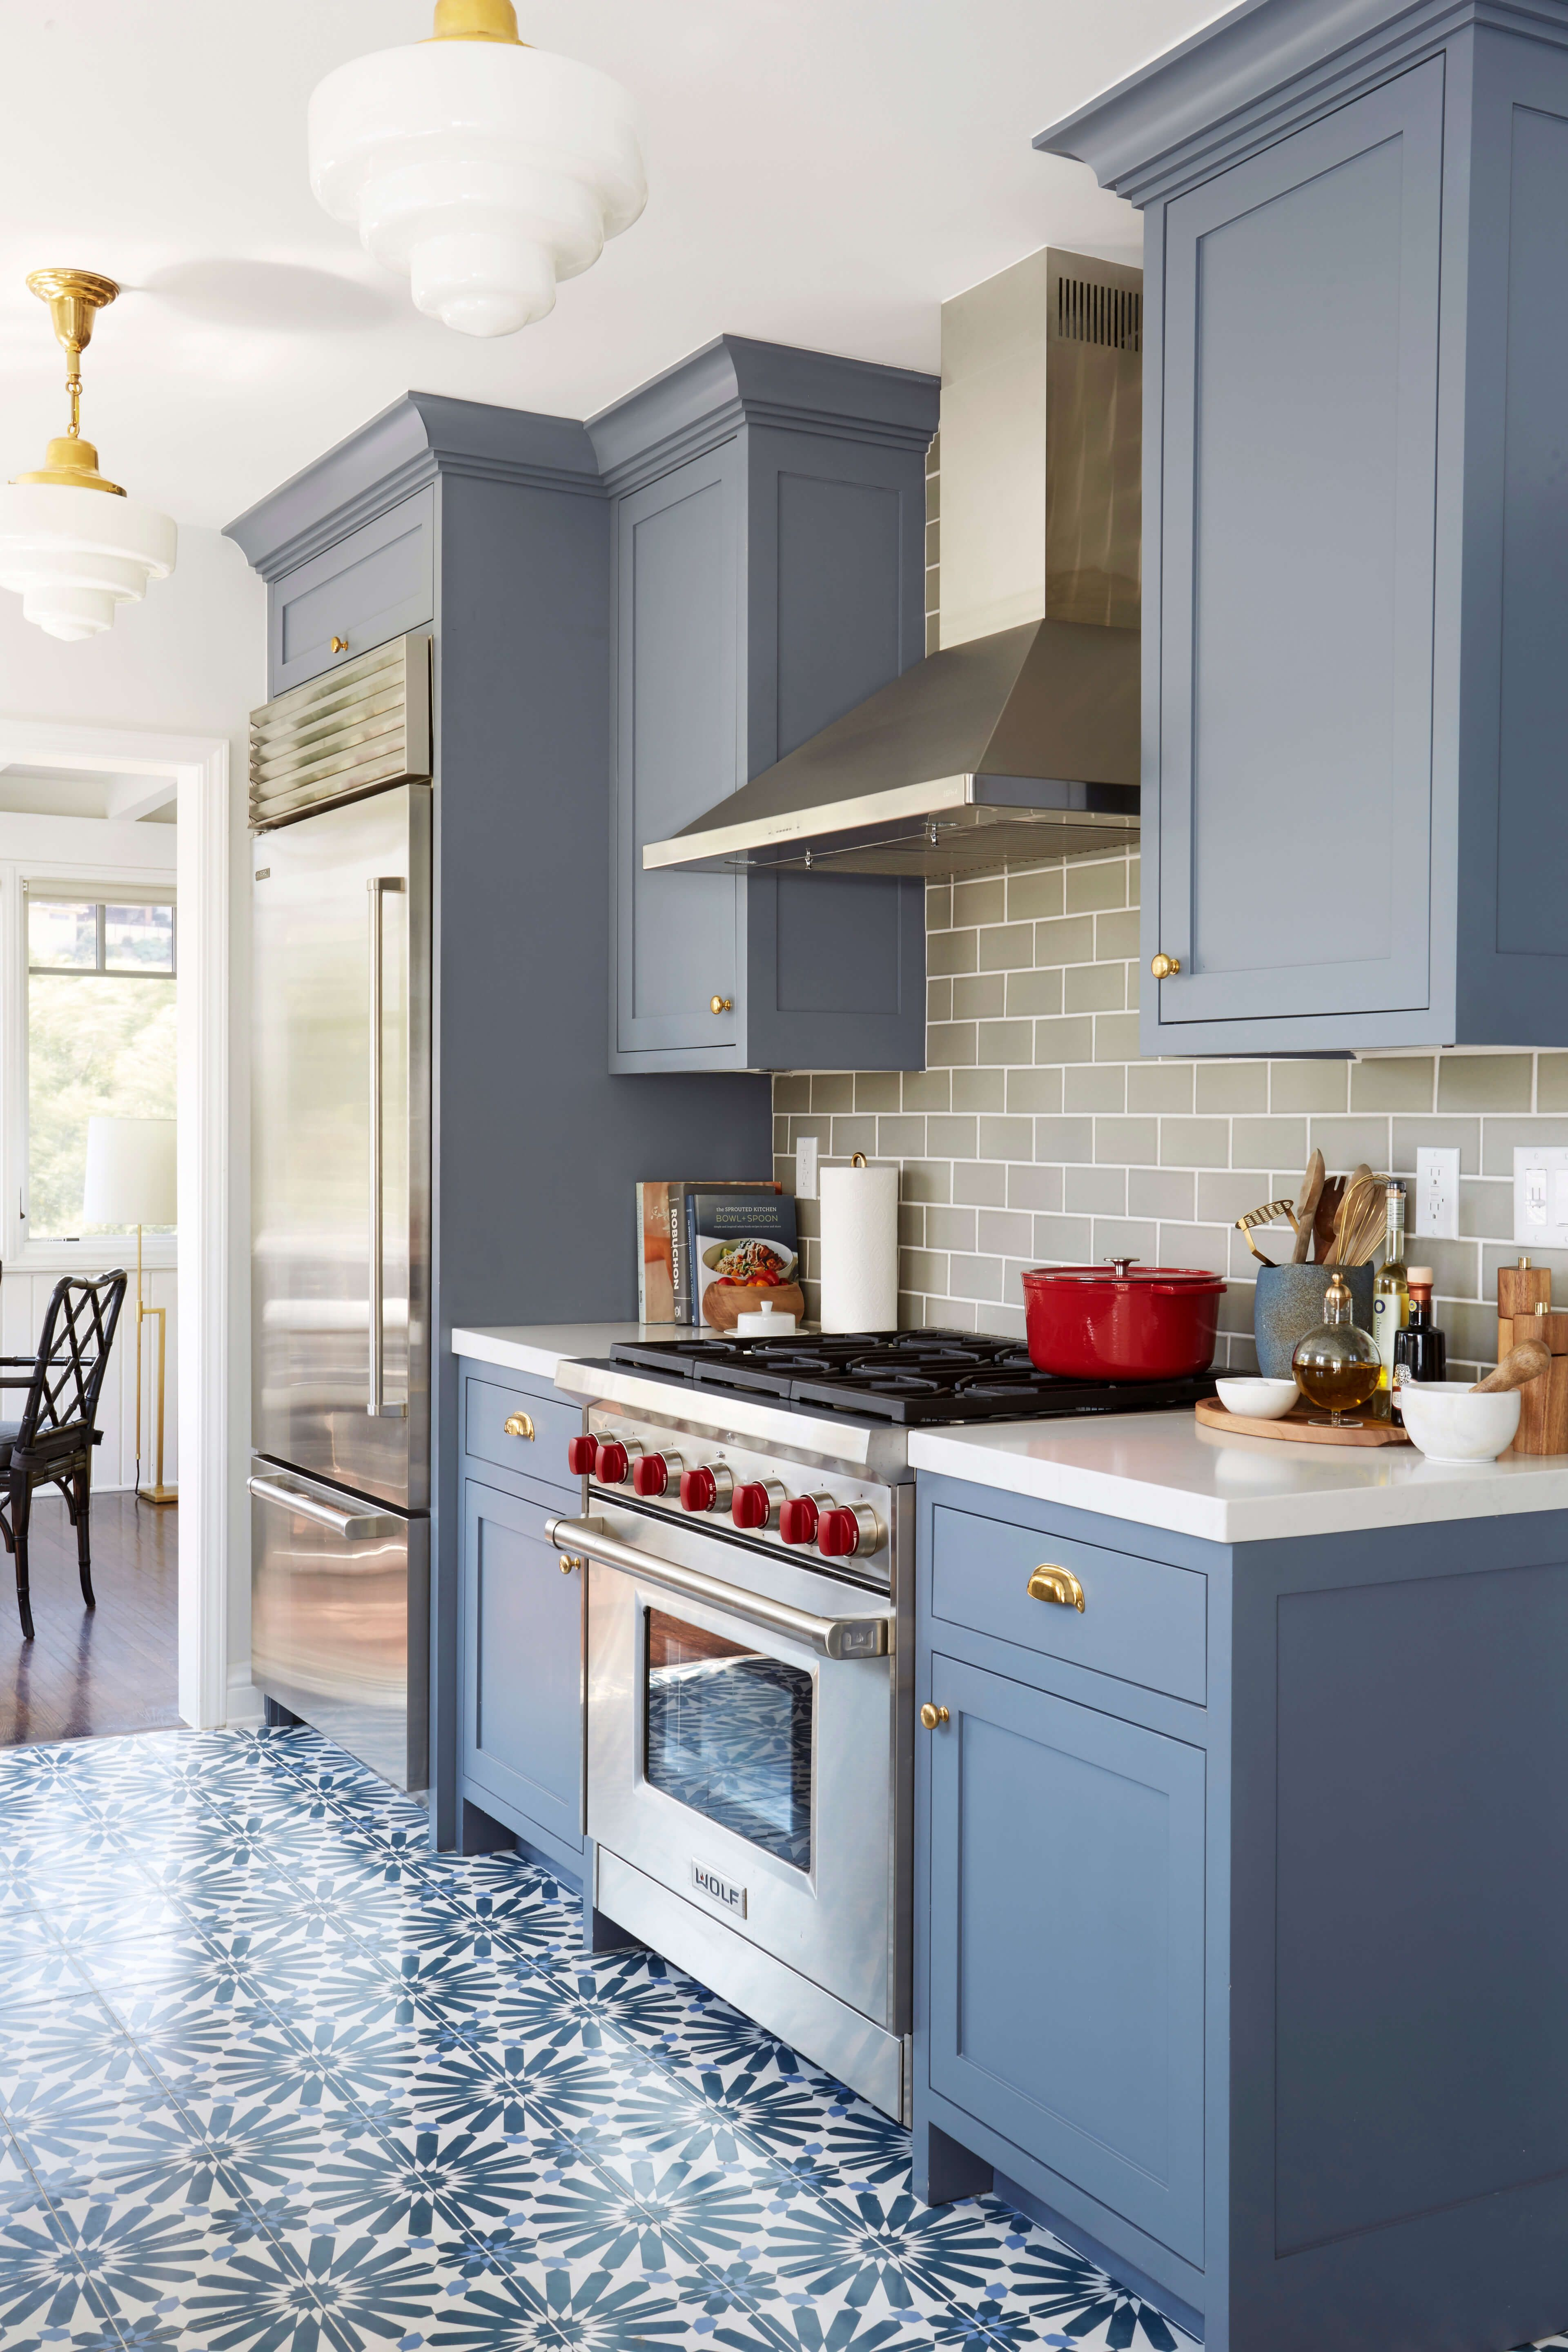 Benjamin moore wolf gray a blue grey painted kitchen for Gray and white kitchen decor